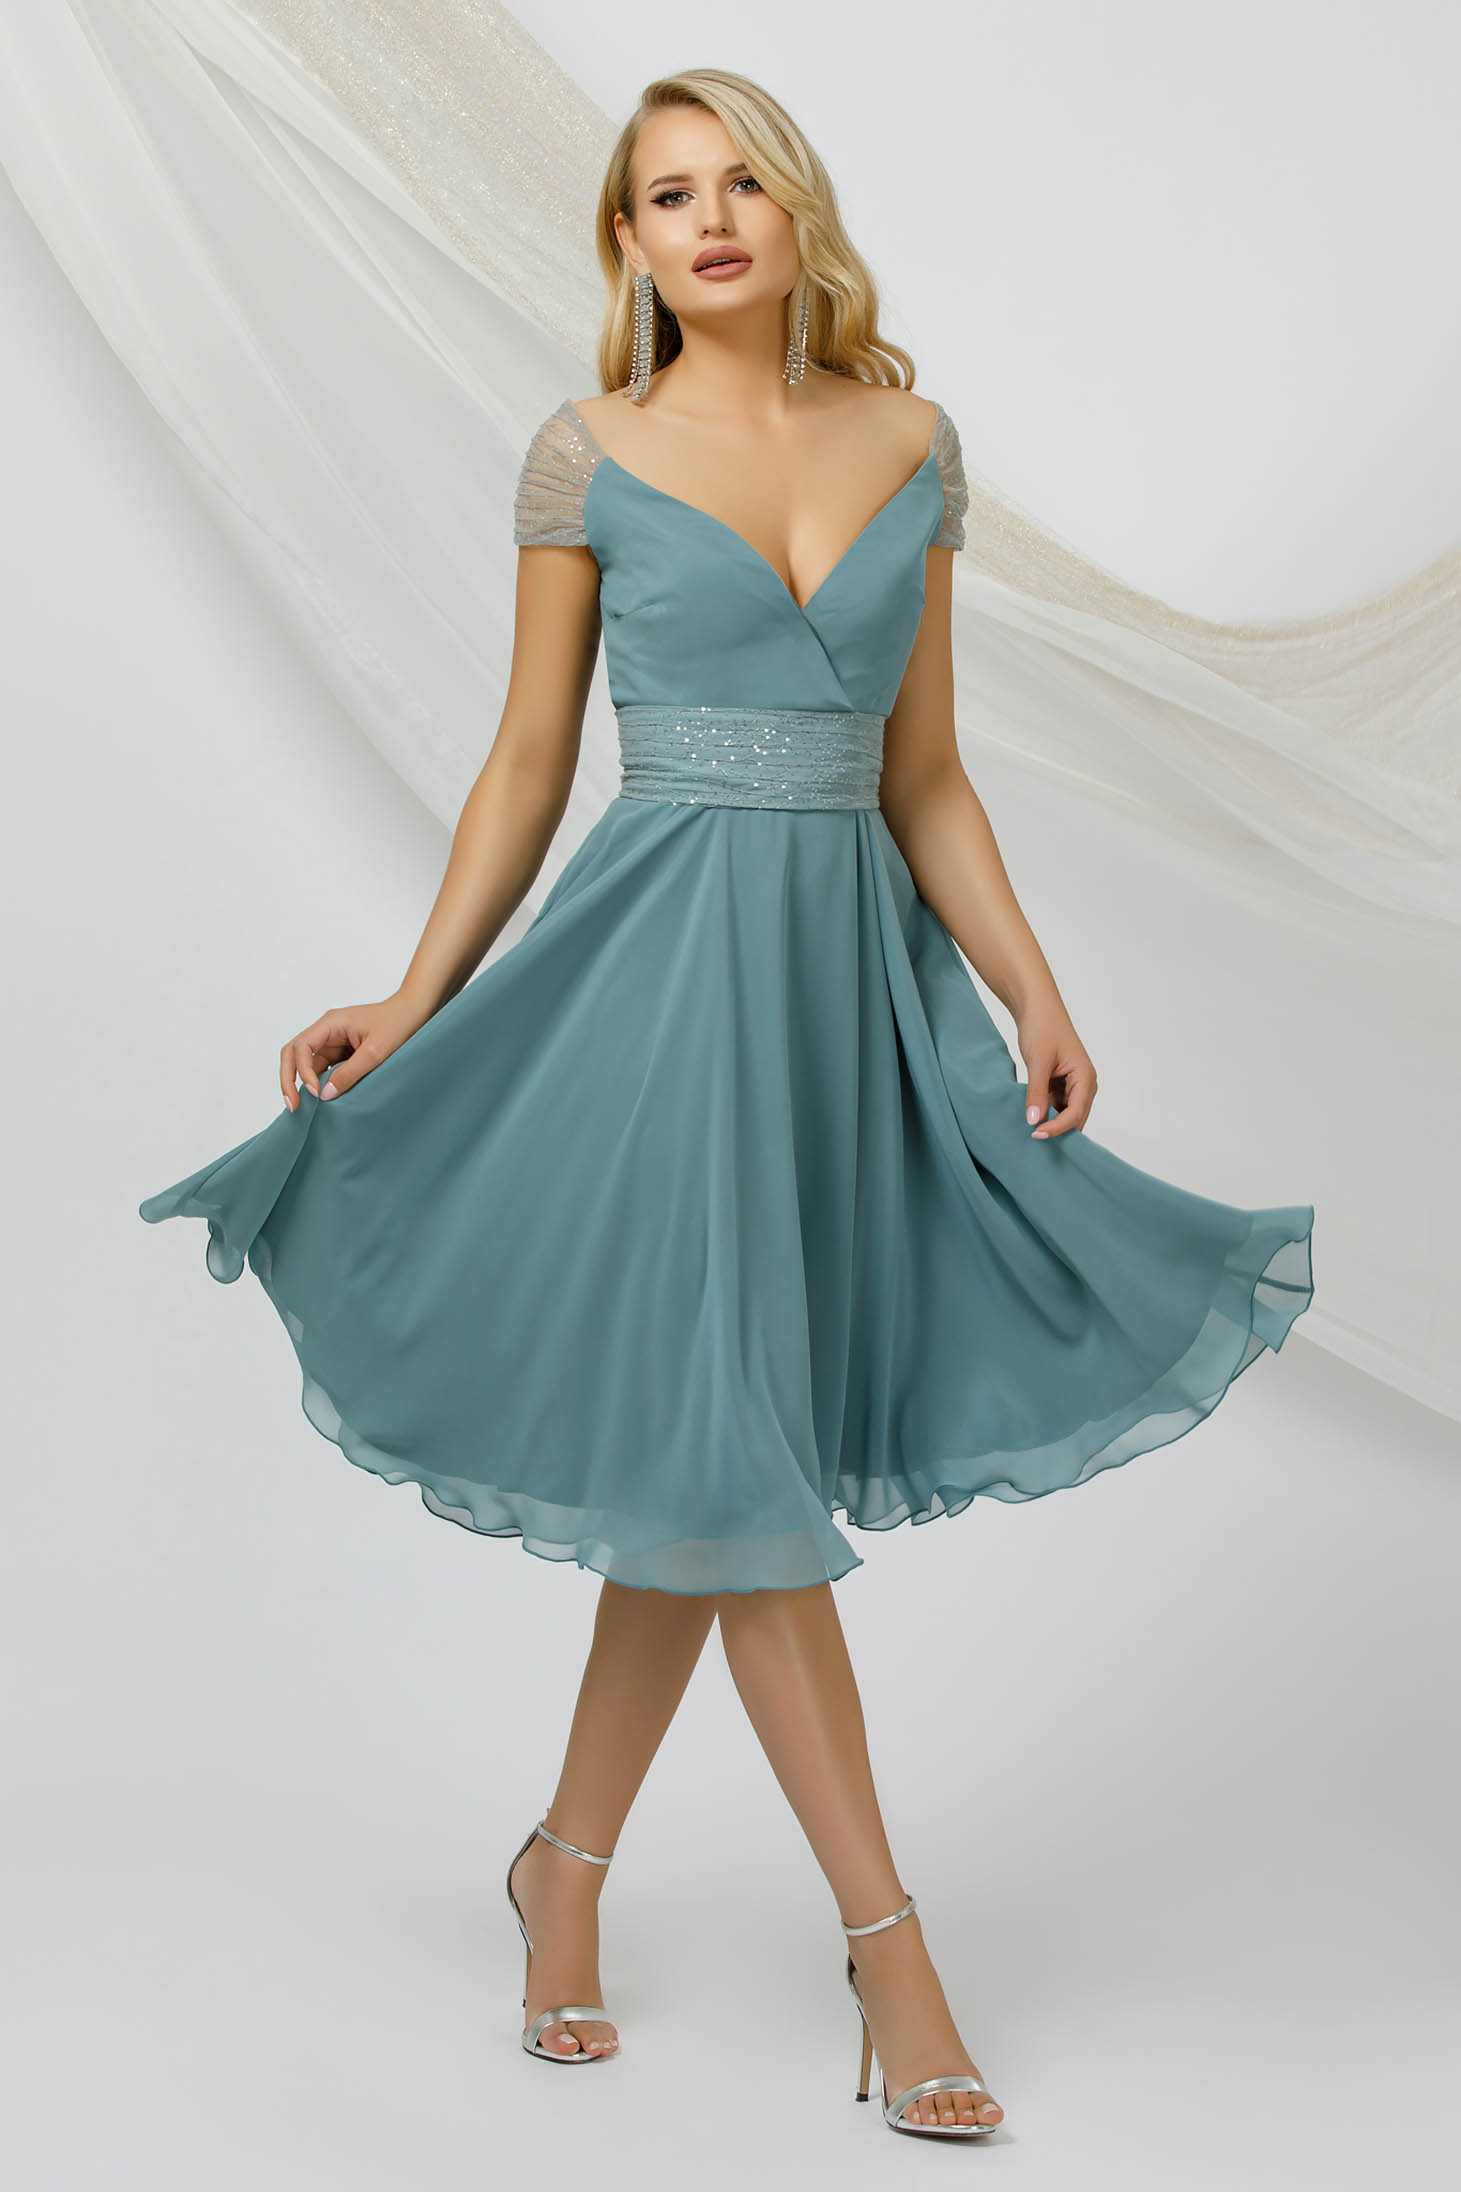 Mint dress occasional thin fabric from veil fabric with sequin embellished details midi